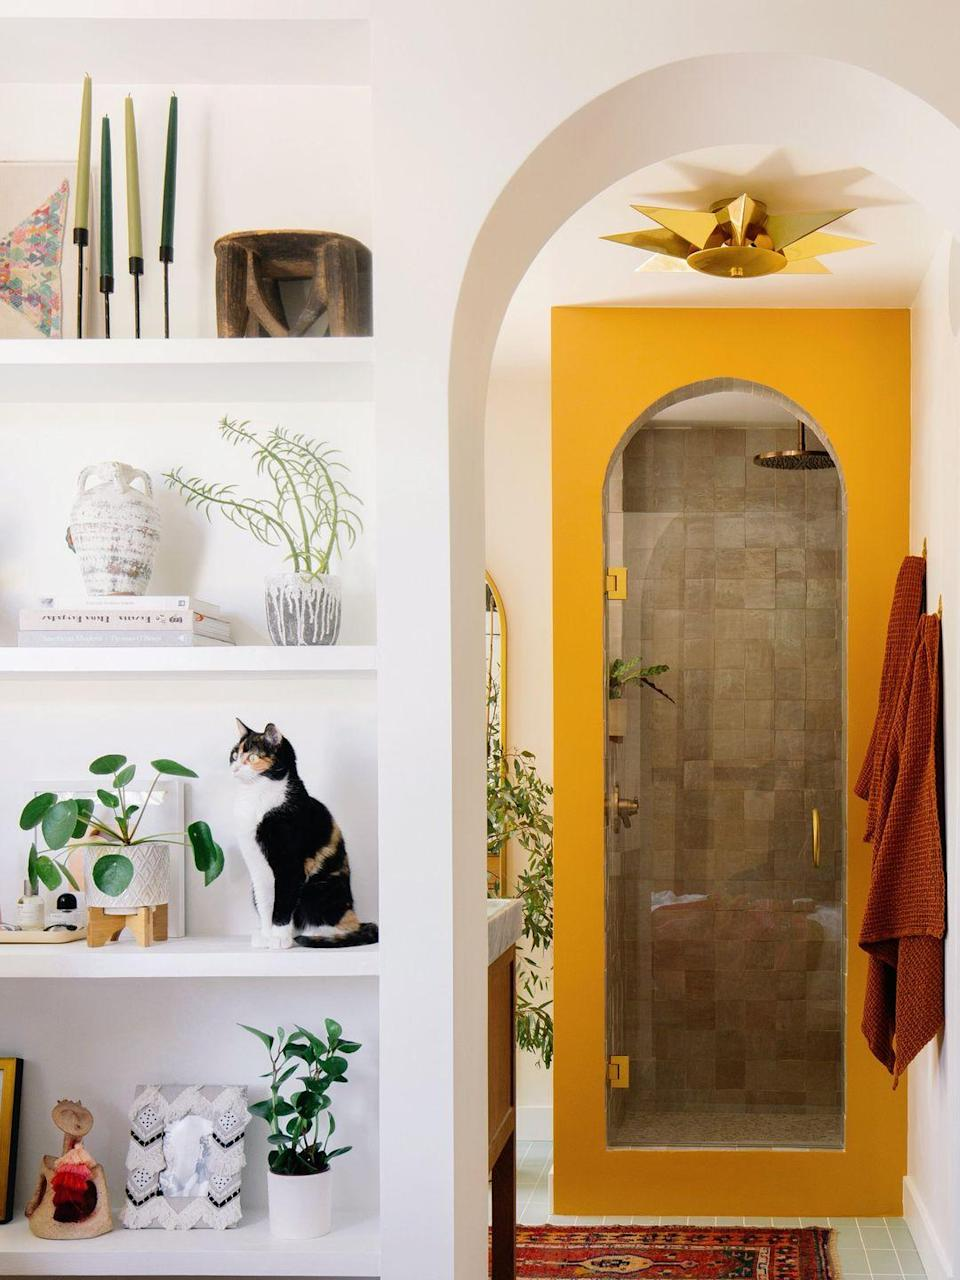 "<p>Liven up your shower with an archway. This warm yellow one by <a href=""http://www.oldbrandnew.com/blog/2020/3/before-after-my-new-master-bedroom-and-bathroom"" rel=""nofollow noopener"" target=""_blank"" data-ylk=""slk:Old Brand New"" class=""link rapid-noclick-resp"">Old Brand New</a> gives the bathroom a vibrance that a plain rectangle-shaped shower would lack.</p>"